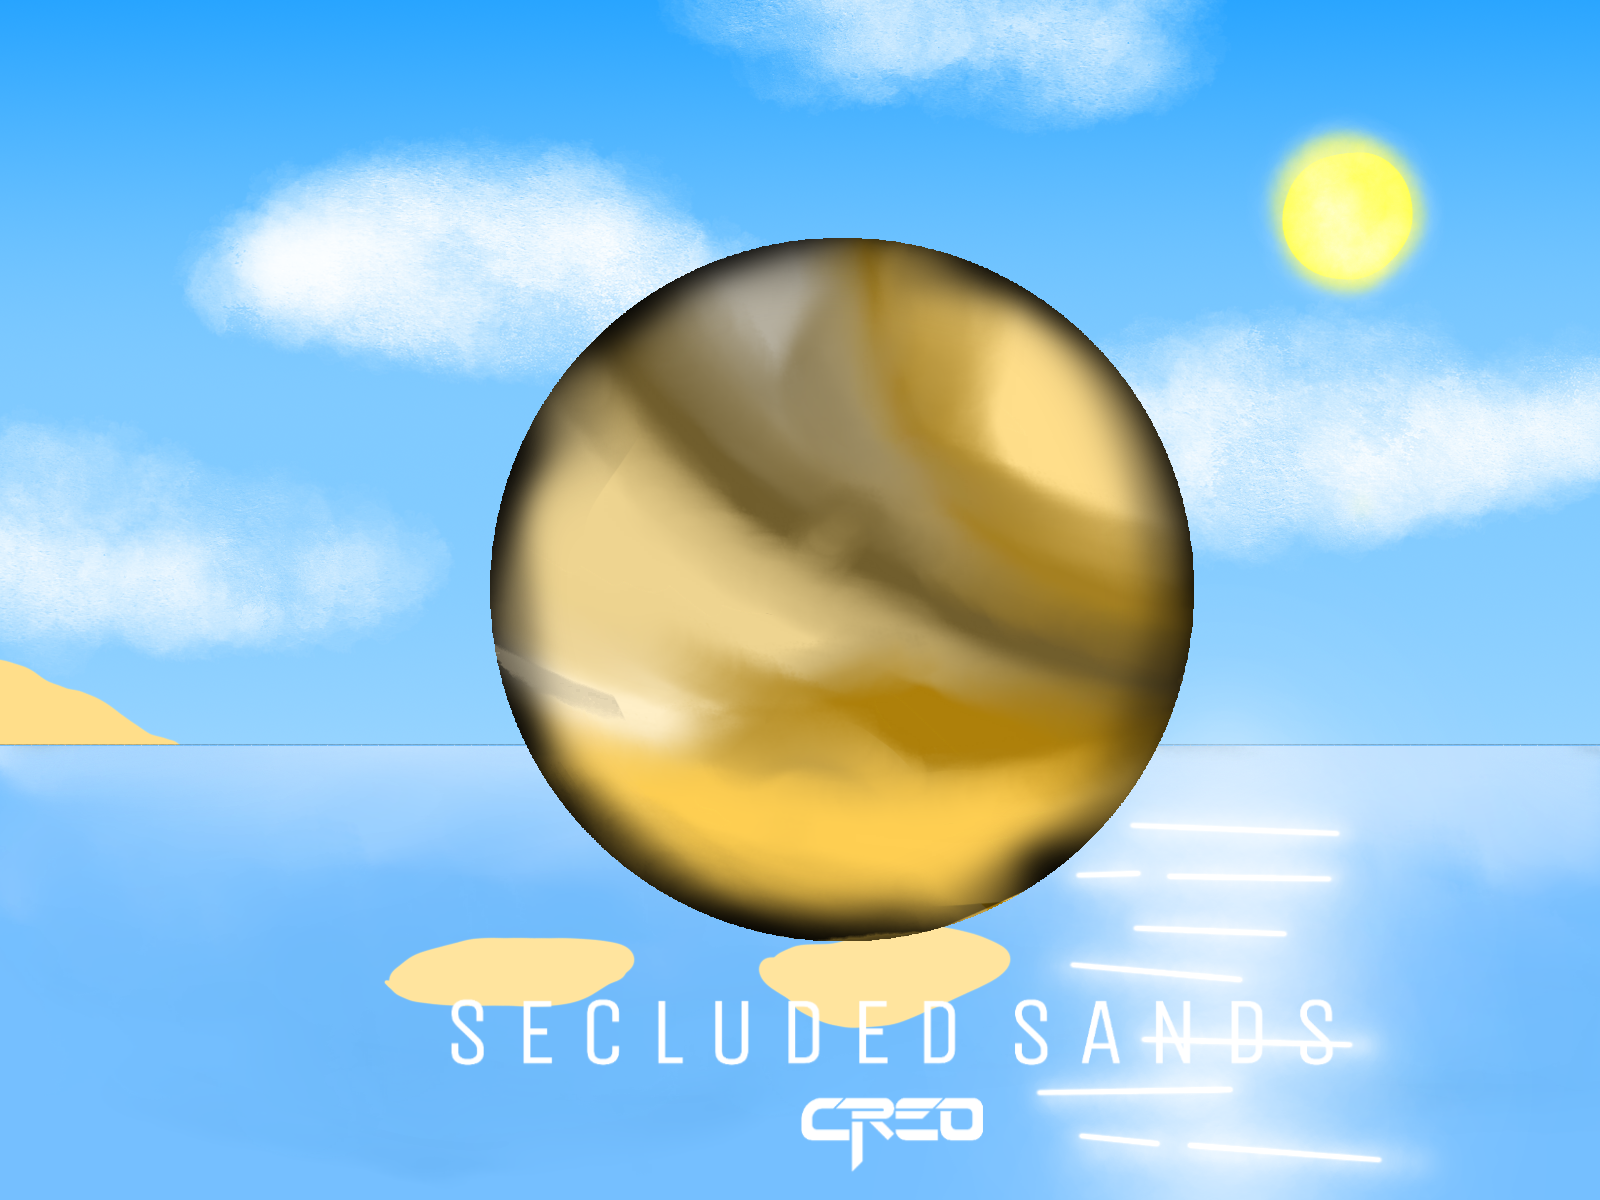 Creo - secluded sands